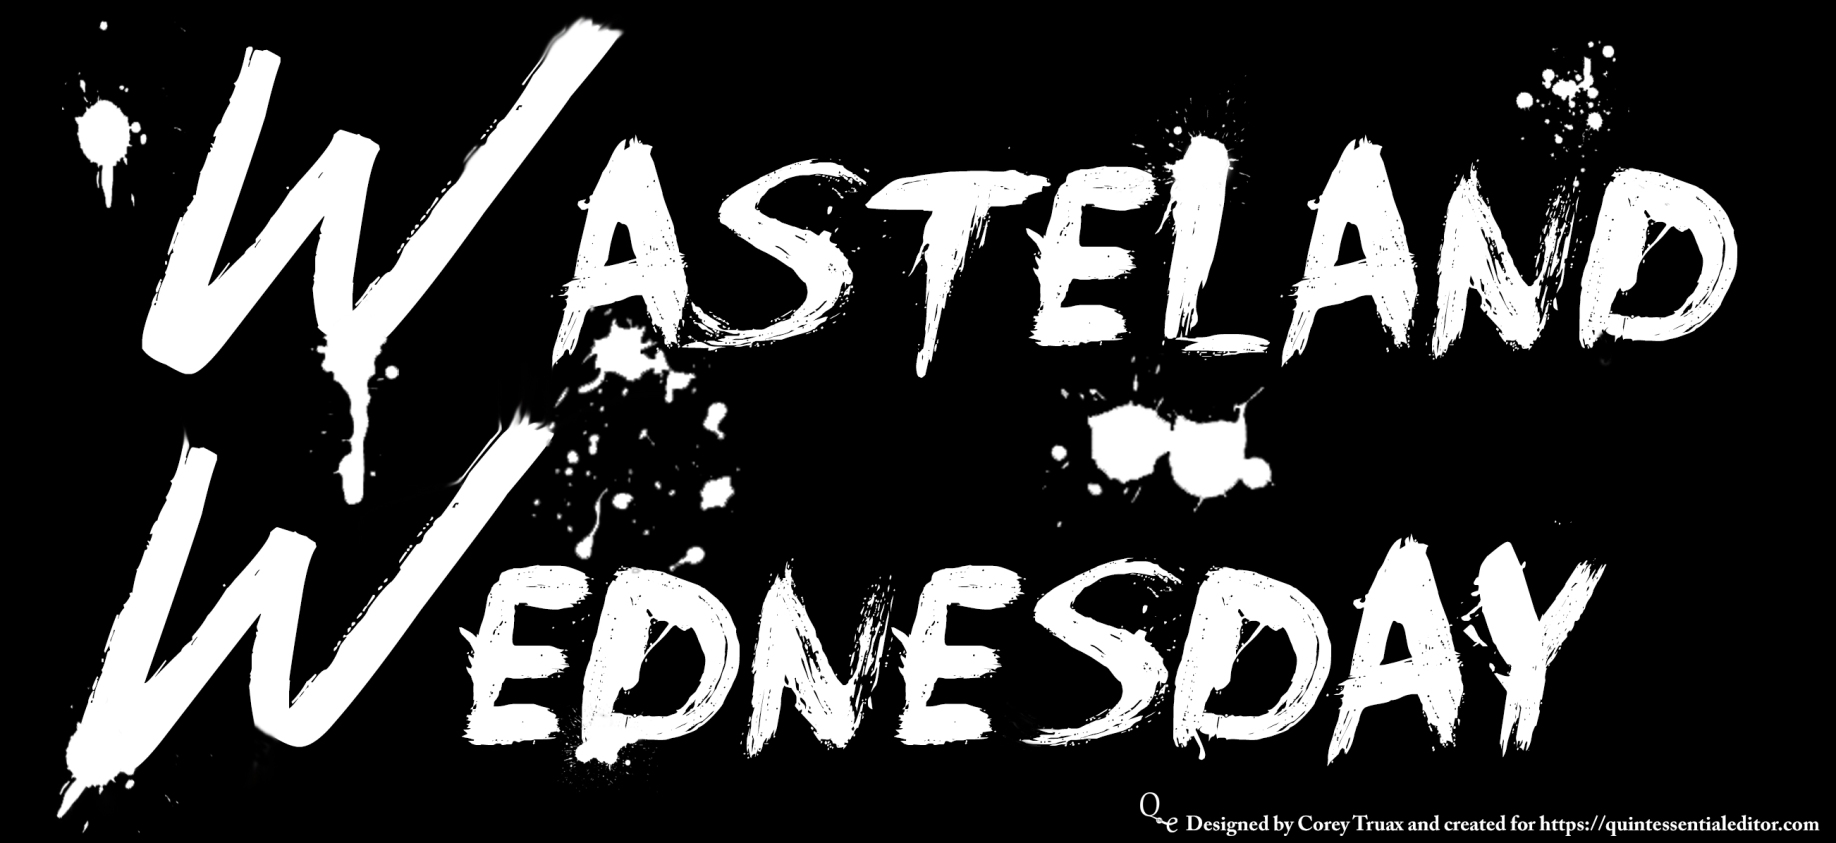 Wasteland Wednesday